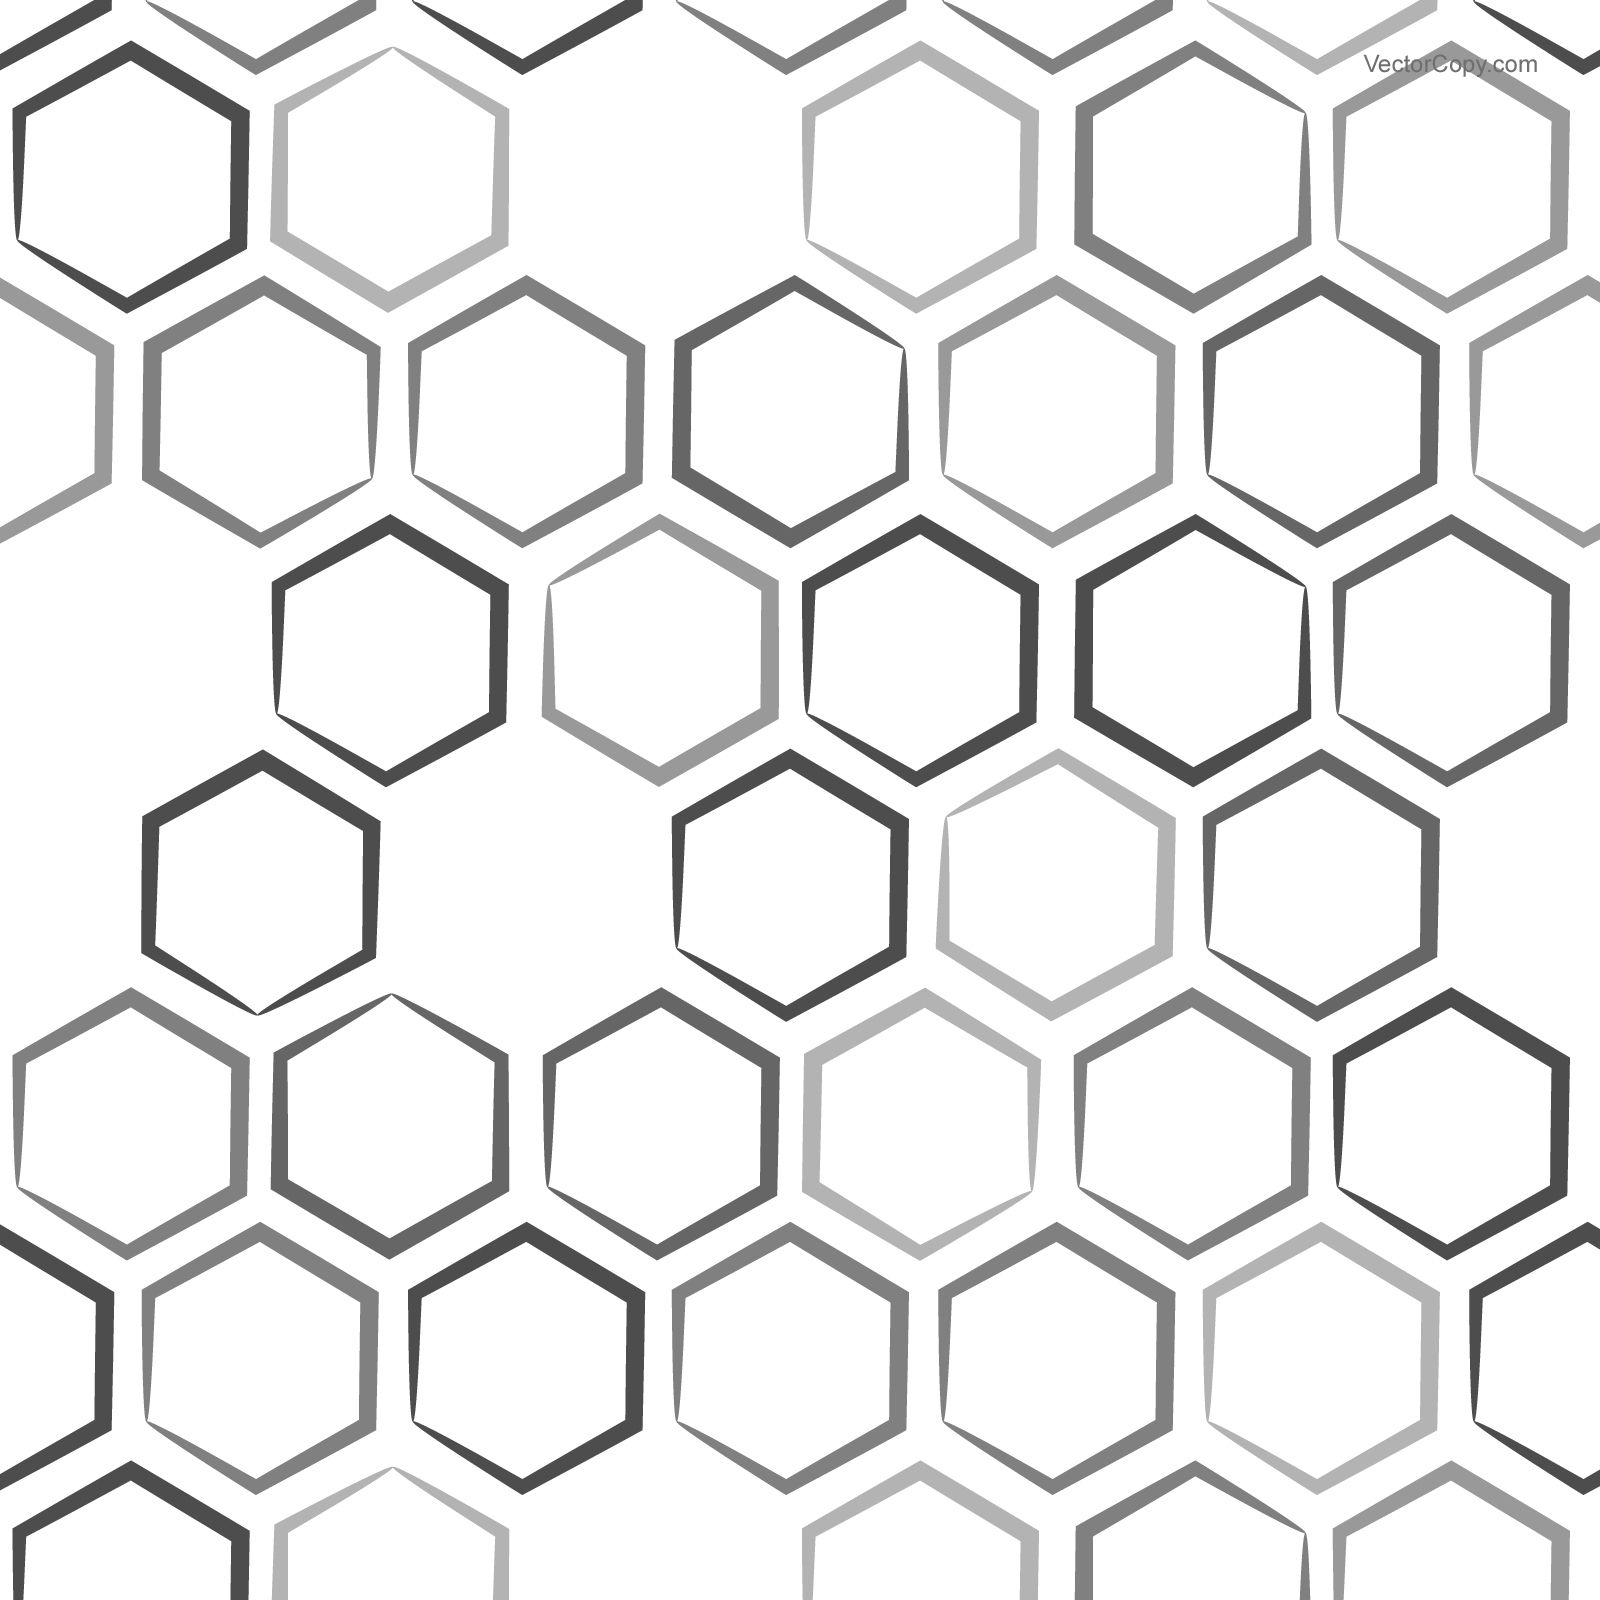 Hexagon Honeycomb Pattern Free Vector Tattoos Technology Old Circuit Board Stock Picture I3330547 At Featurepics